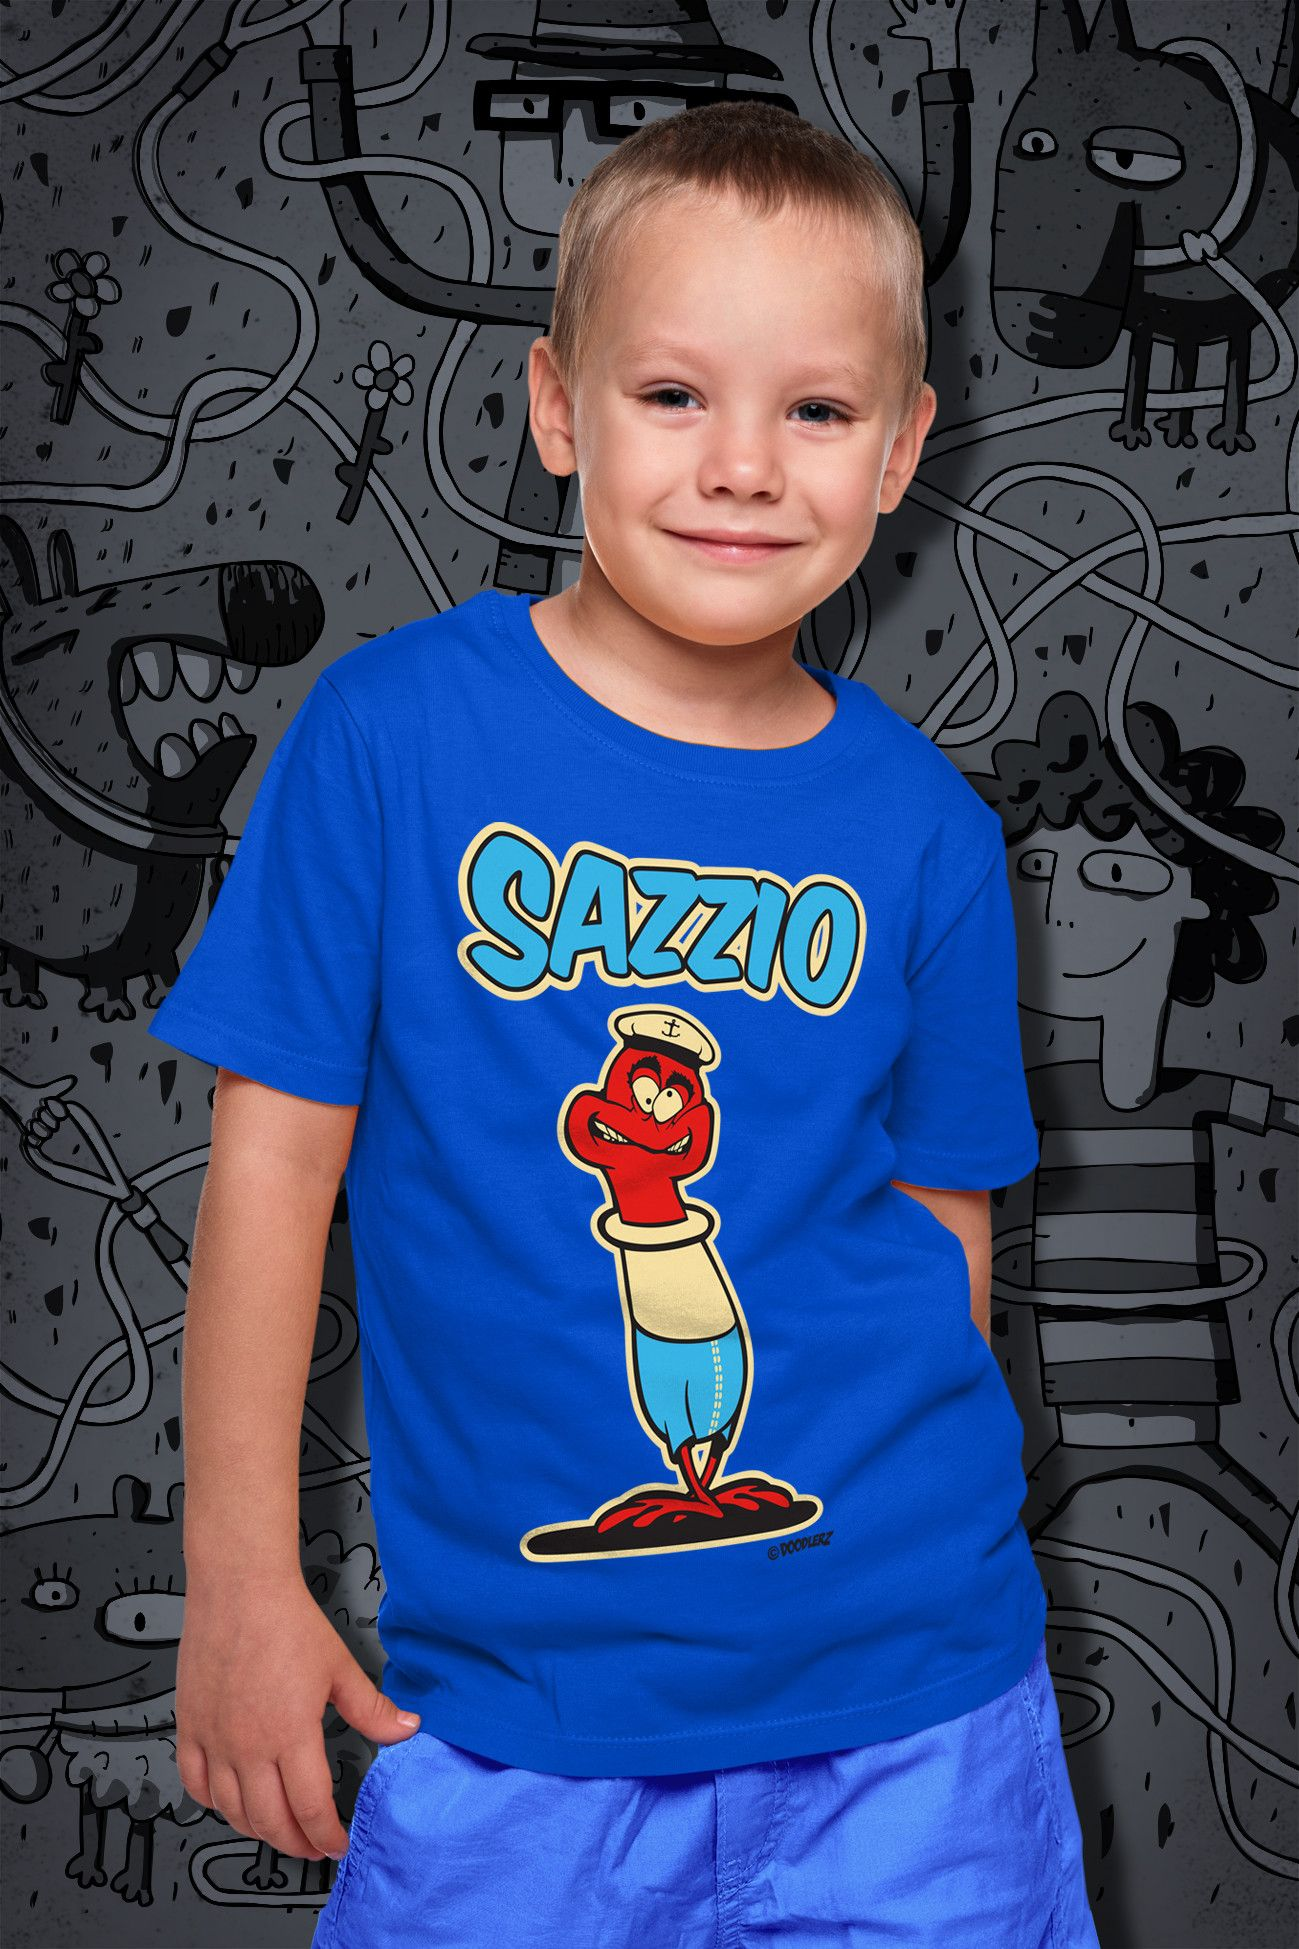 SAZZIO Short Sleeve Boys T-shirt. Filled with retro style and vintage appeal, this classic T-shirt from the Doodlerz collection is the perfect choice for your little sailor boy. Crafted in soft pure cotton with a round neckline, it comes designed with a full colour high quality print of our friend Sazzio.